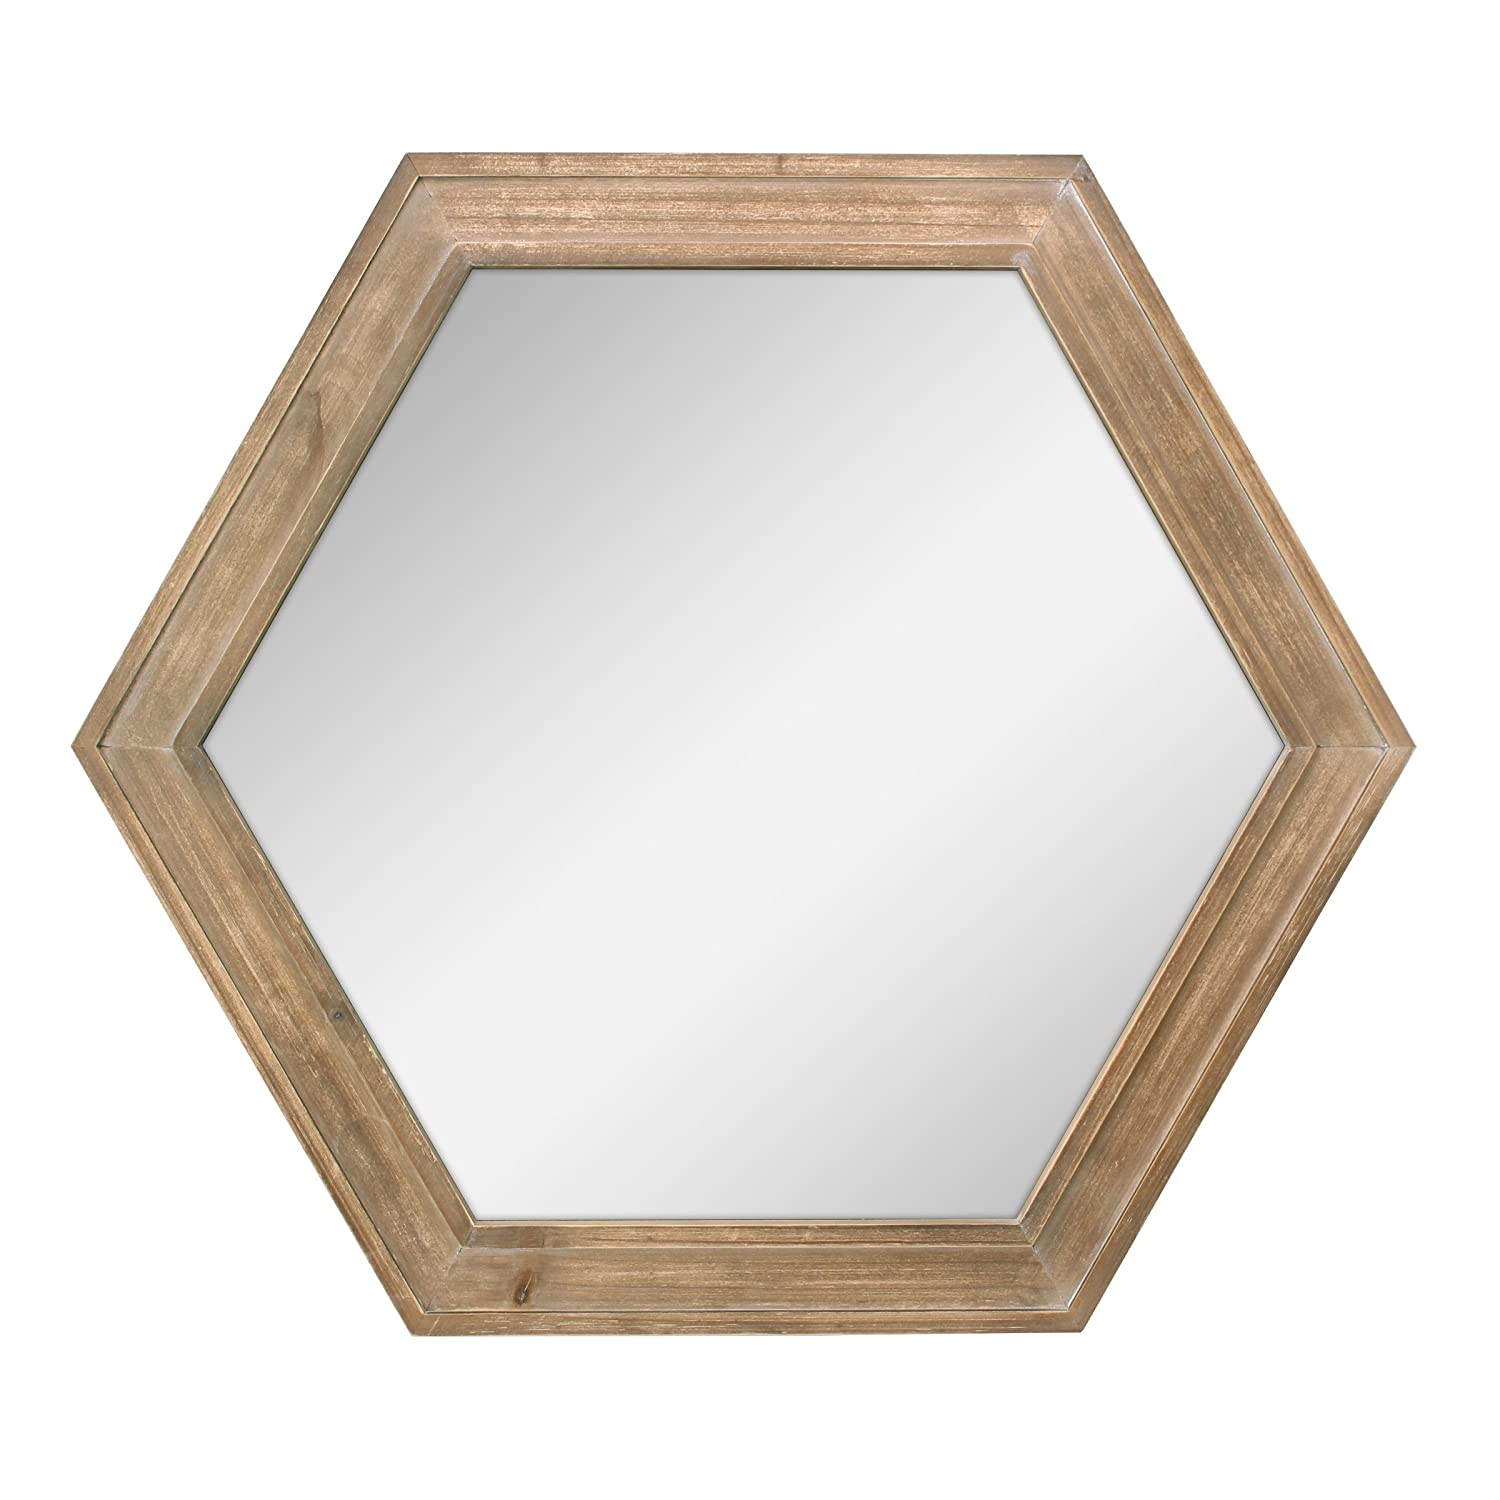 "Stonebriar Decorative 24"" Hexagon Hanging Wall Mirror with Natural Wood Frame and Attached Hanging Bracket, Rustic Farmhouse Decor for the Living Room, Bathroom, Bedroom, and Entryway"